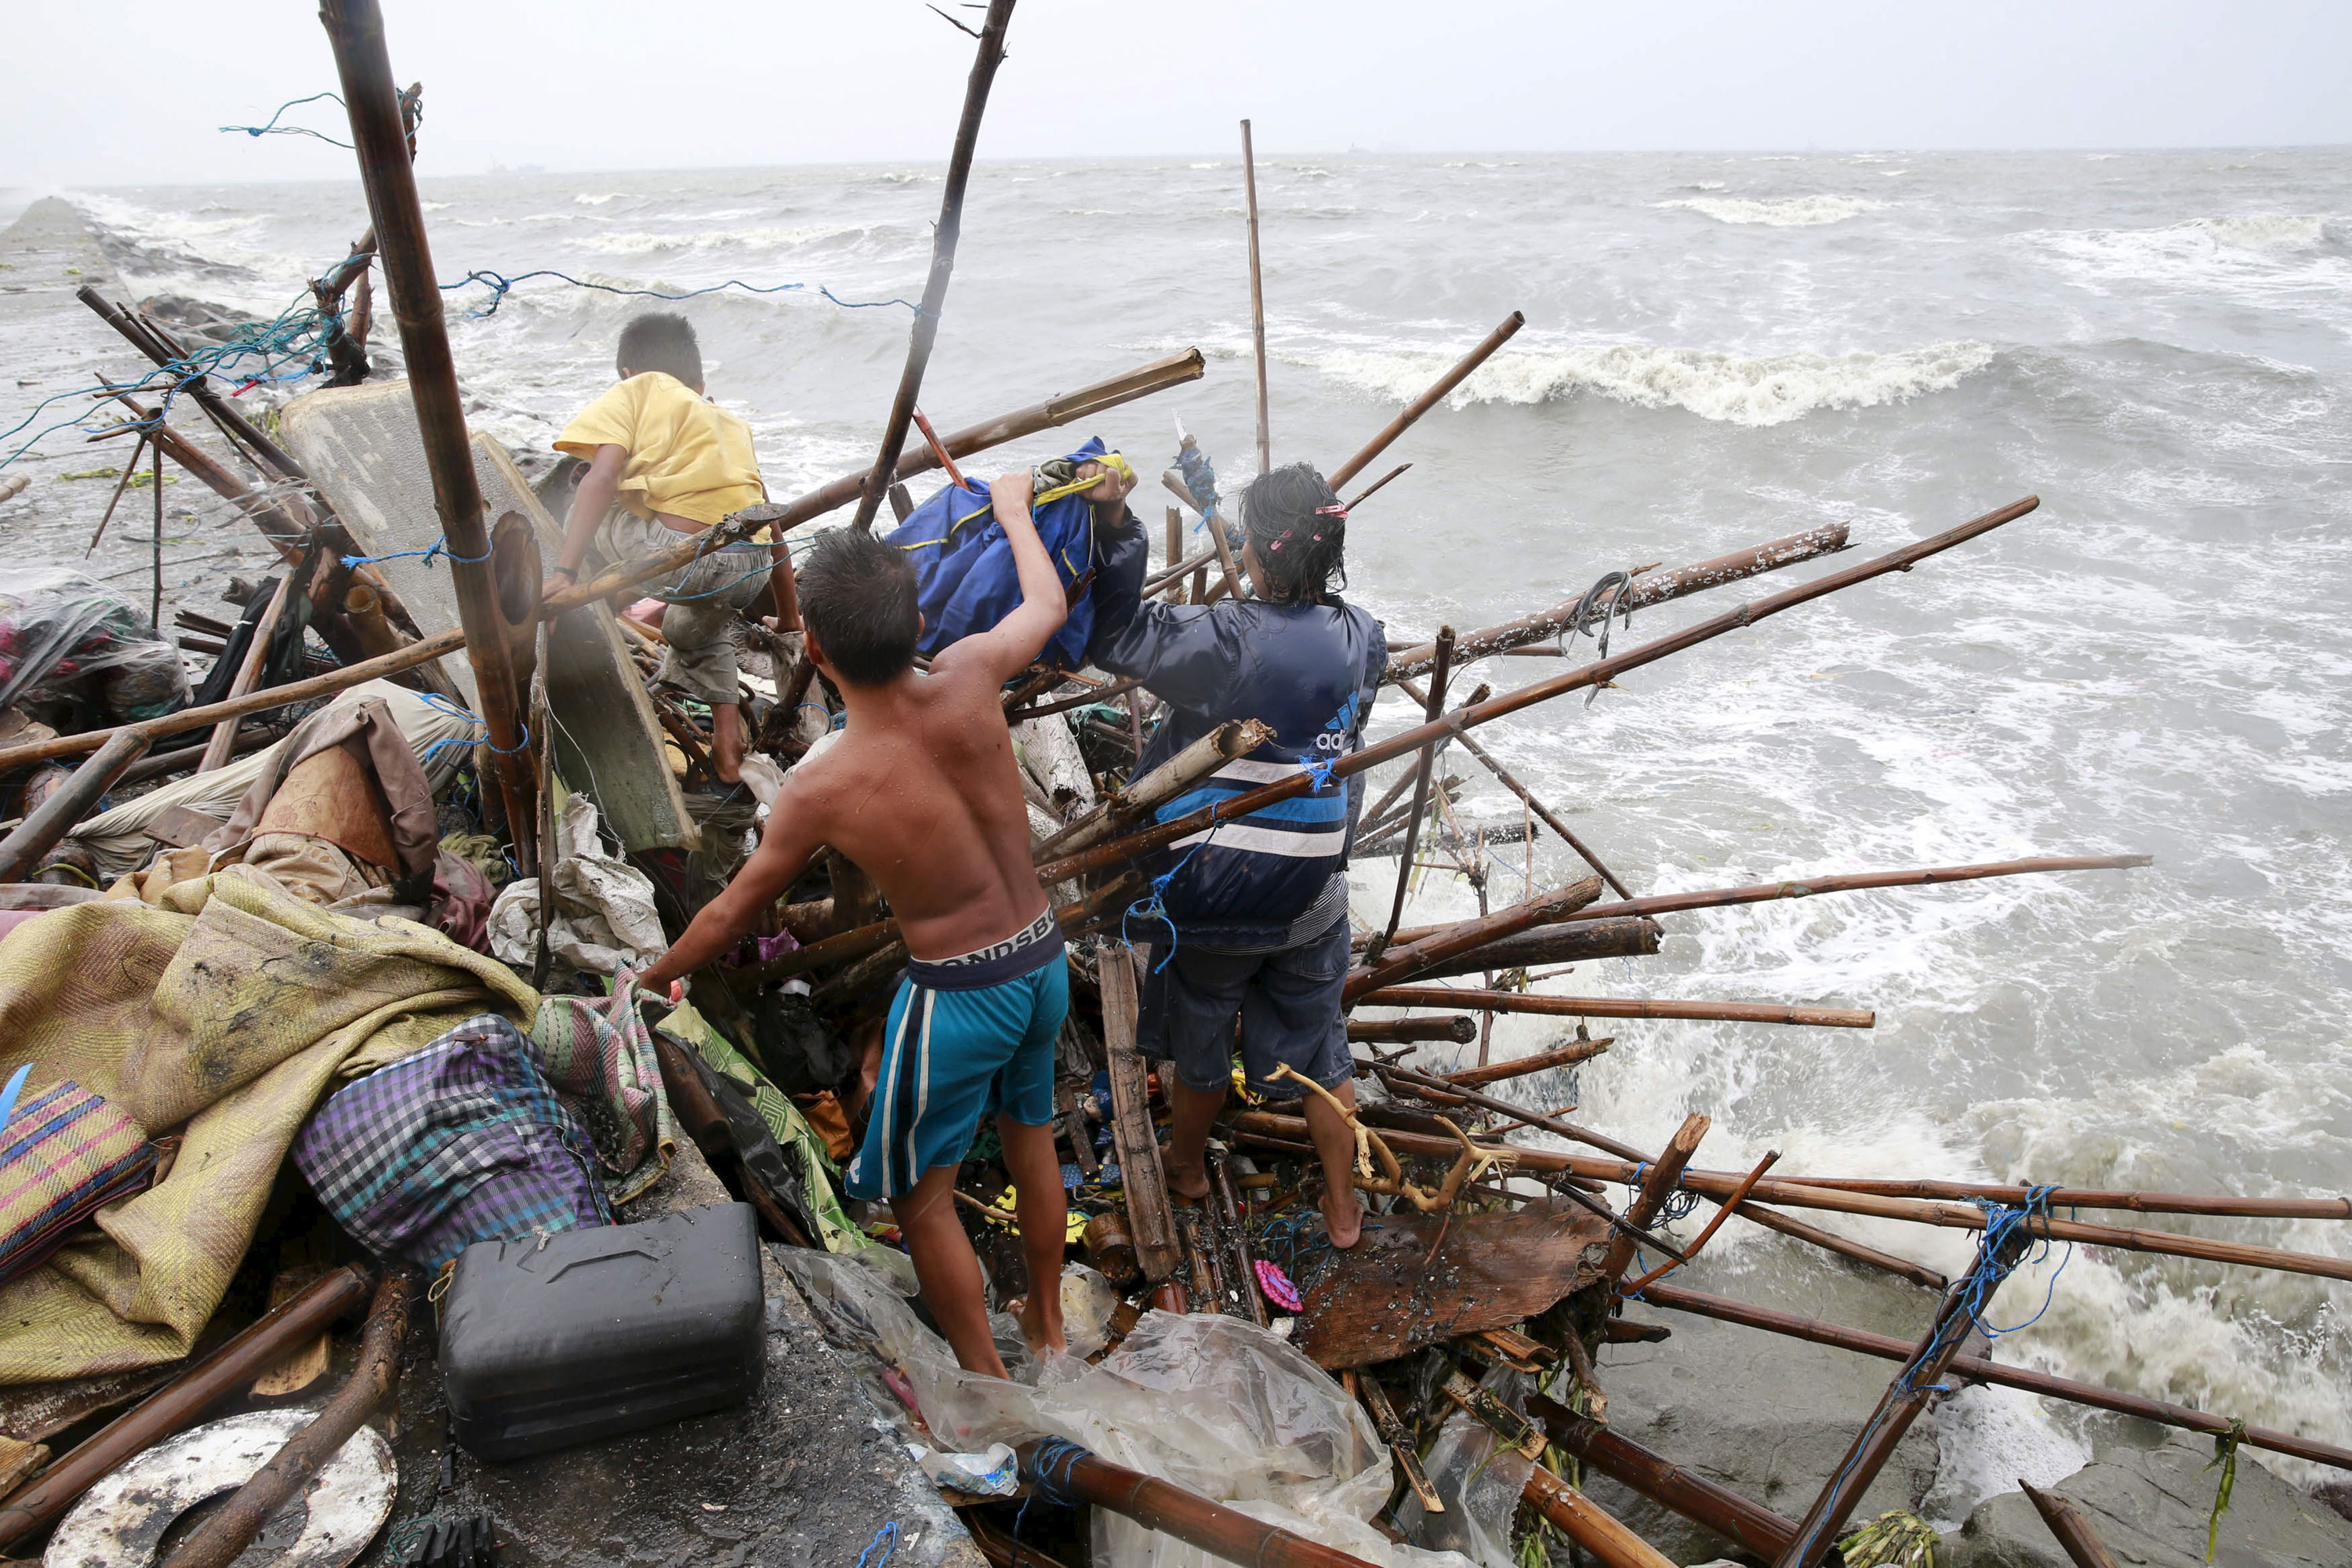 A Taroyo family living along the coast of Manila Bay searches for salvageable items after their house was damaged by strong winds. [Romeo Ranoco/Reuters]